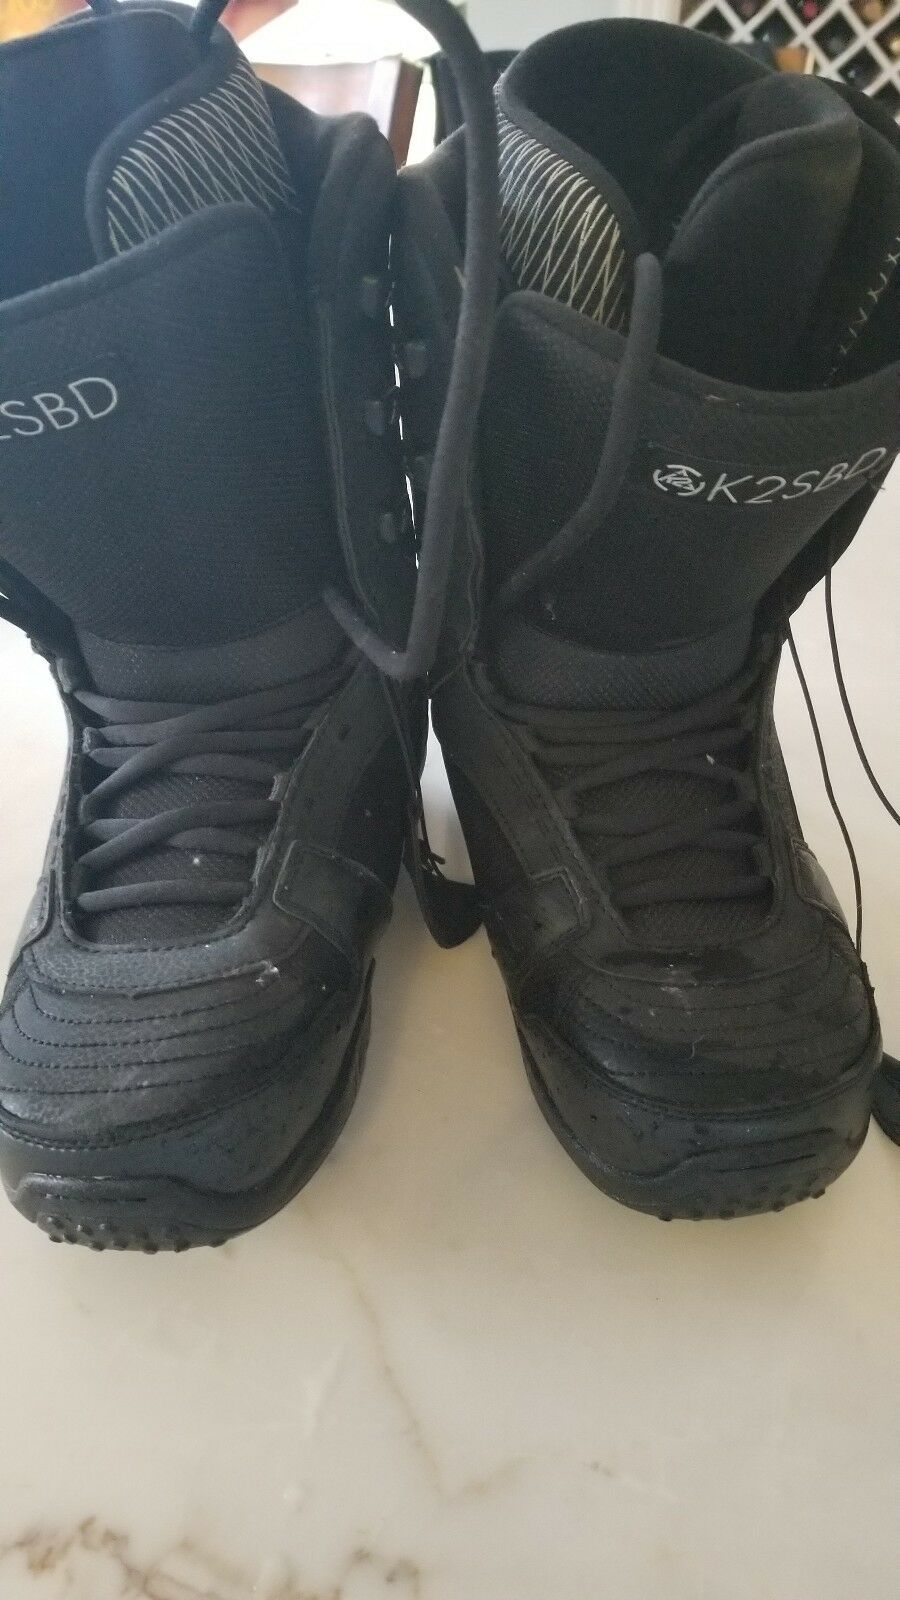 Mens snowboard boots size 9 K2SBD